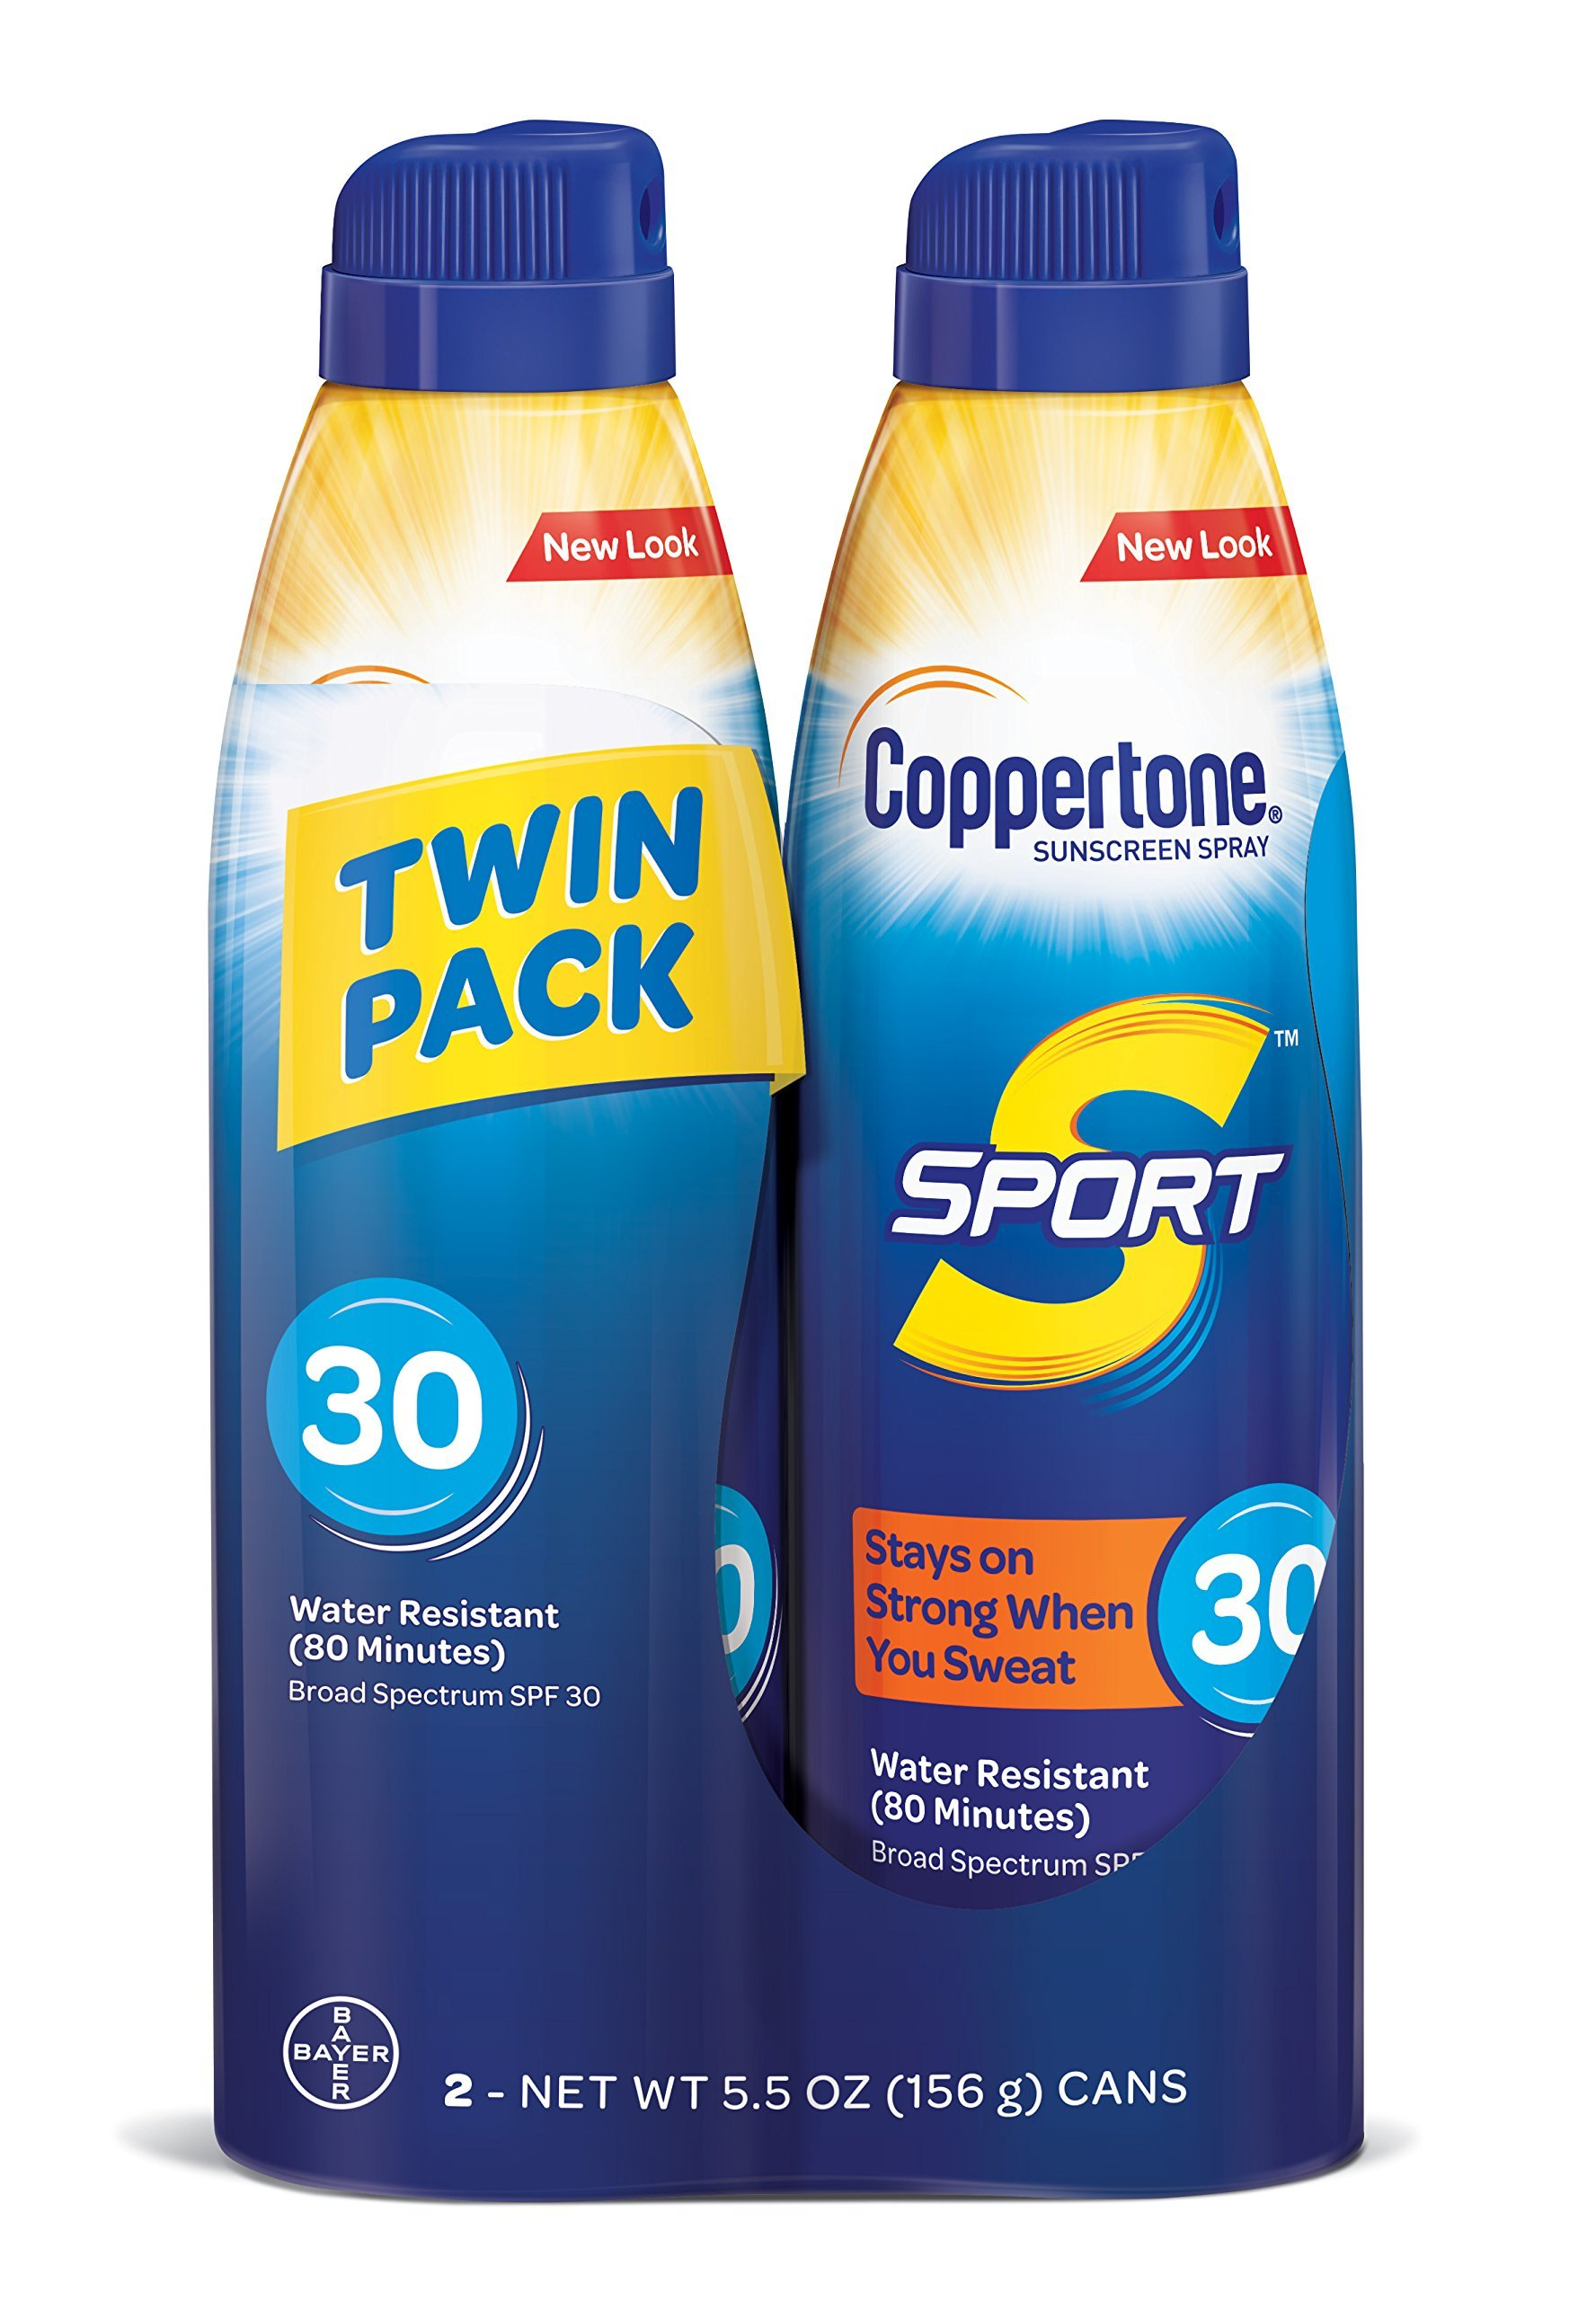 Coppertone SPORT Continuous Sunscreen Spray Broad Spectrum SPF 30 (5.5-Ounce Bottle, Twin Pack)